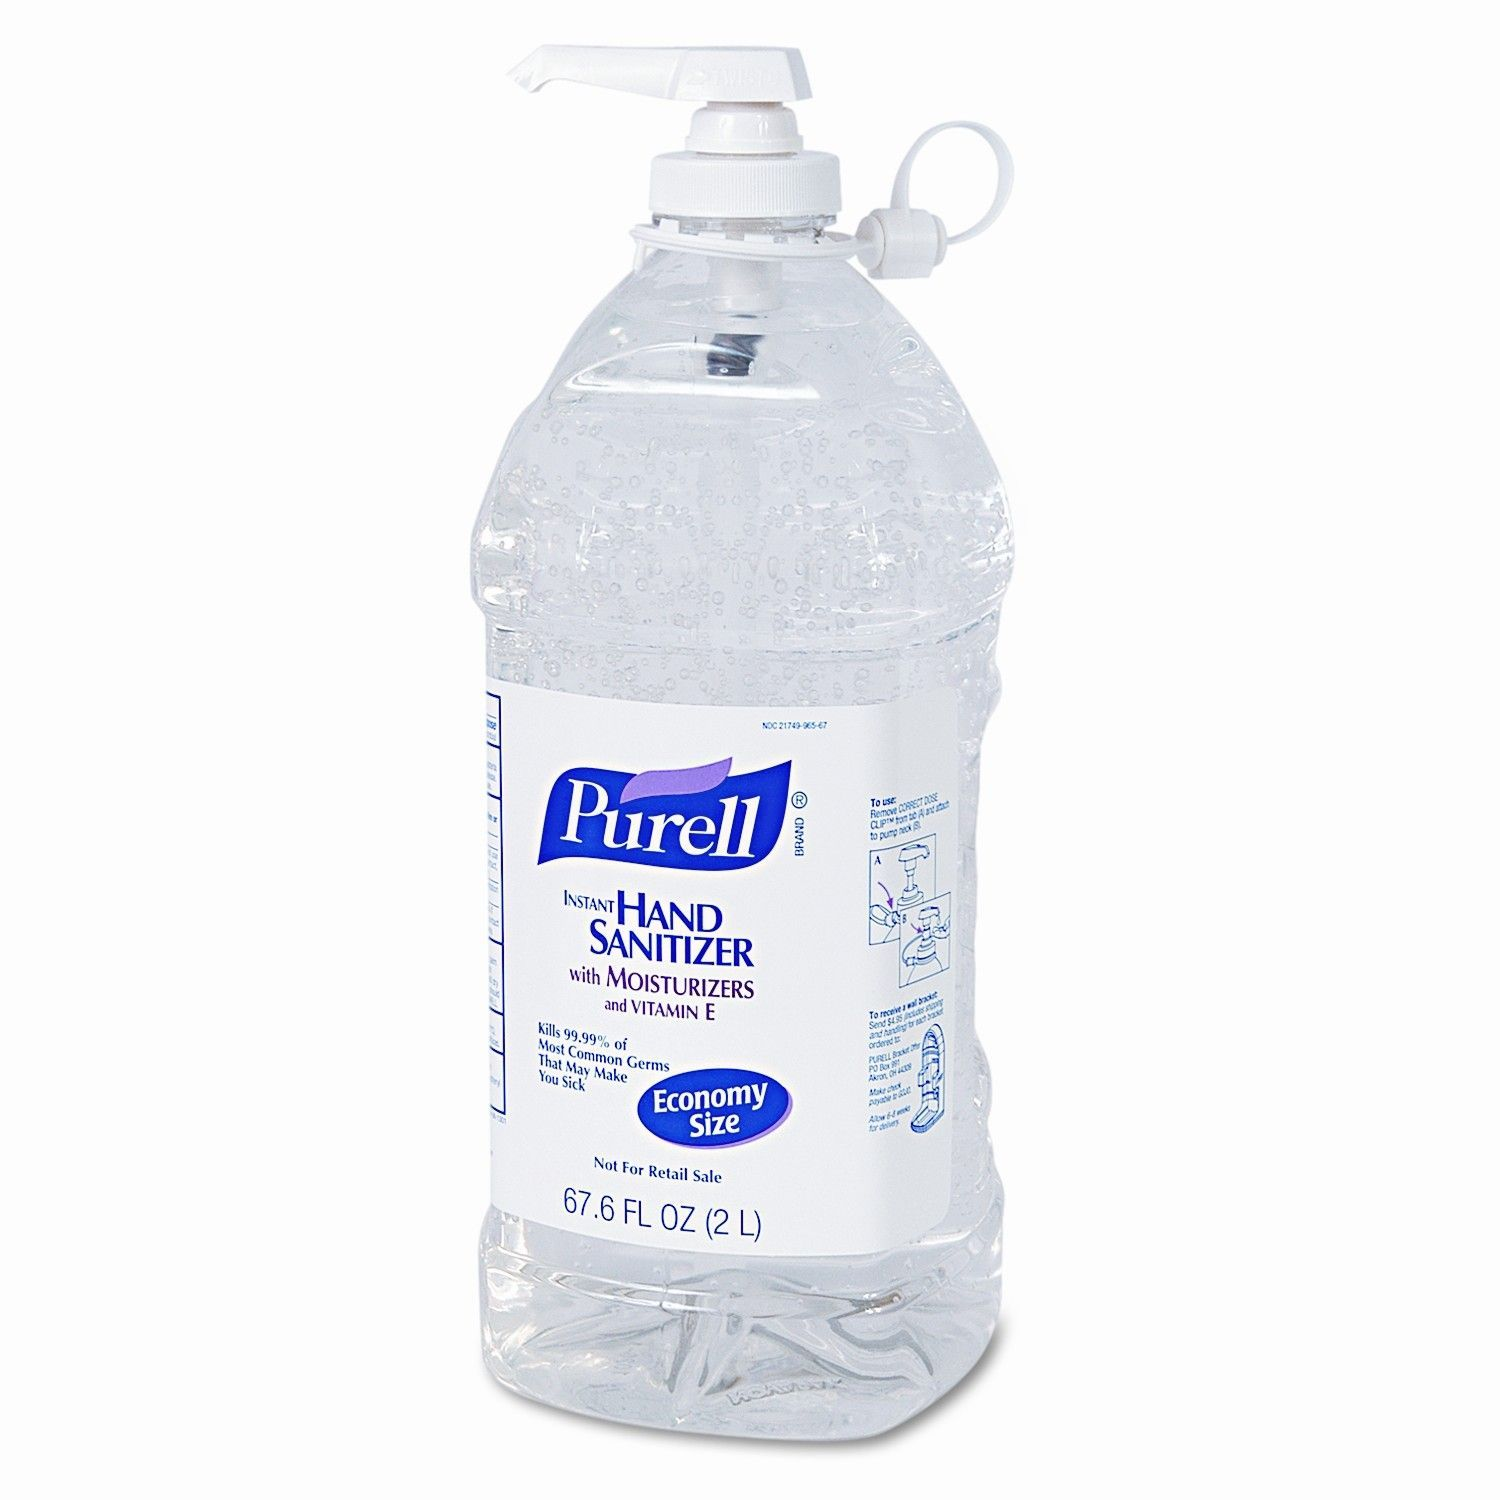 Purell Instant Hand Sanitizer 2 Liter Products Bottle Hand